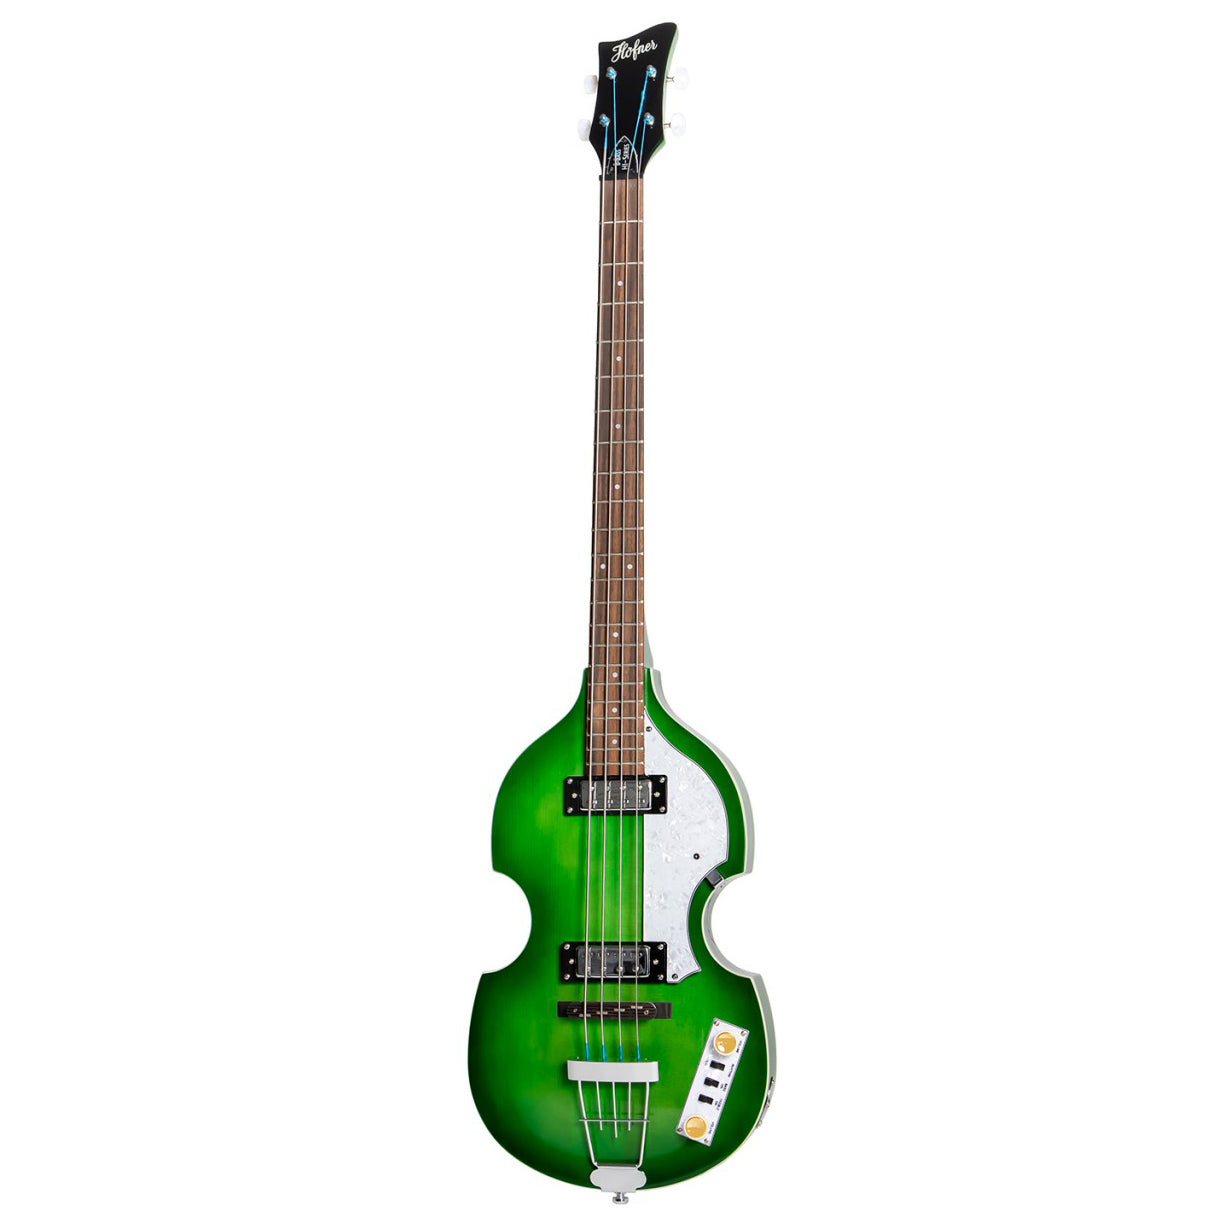 Hofner Ignition Pro Violin Bass Green HOF-HI-BB-PE-GR